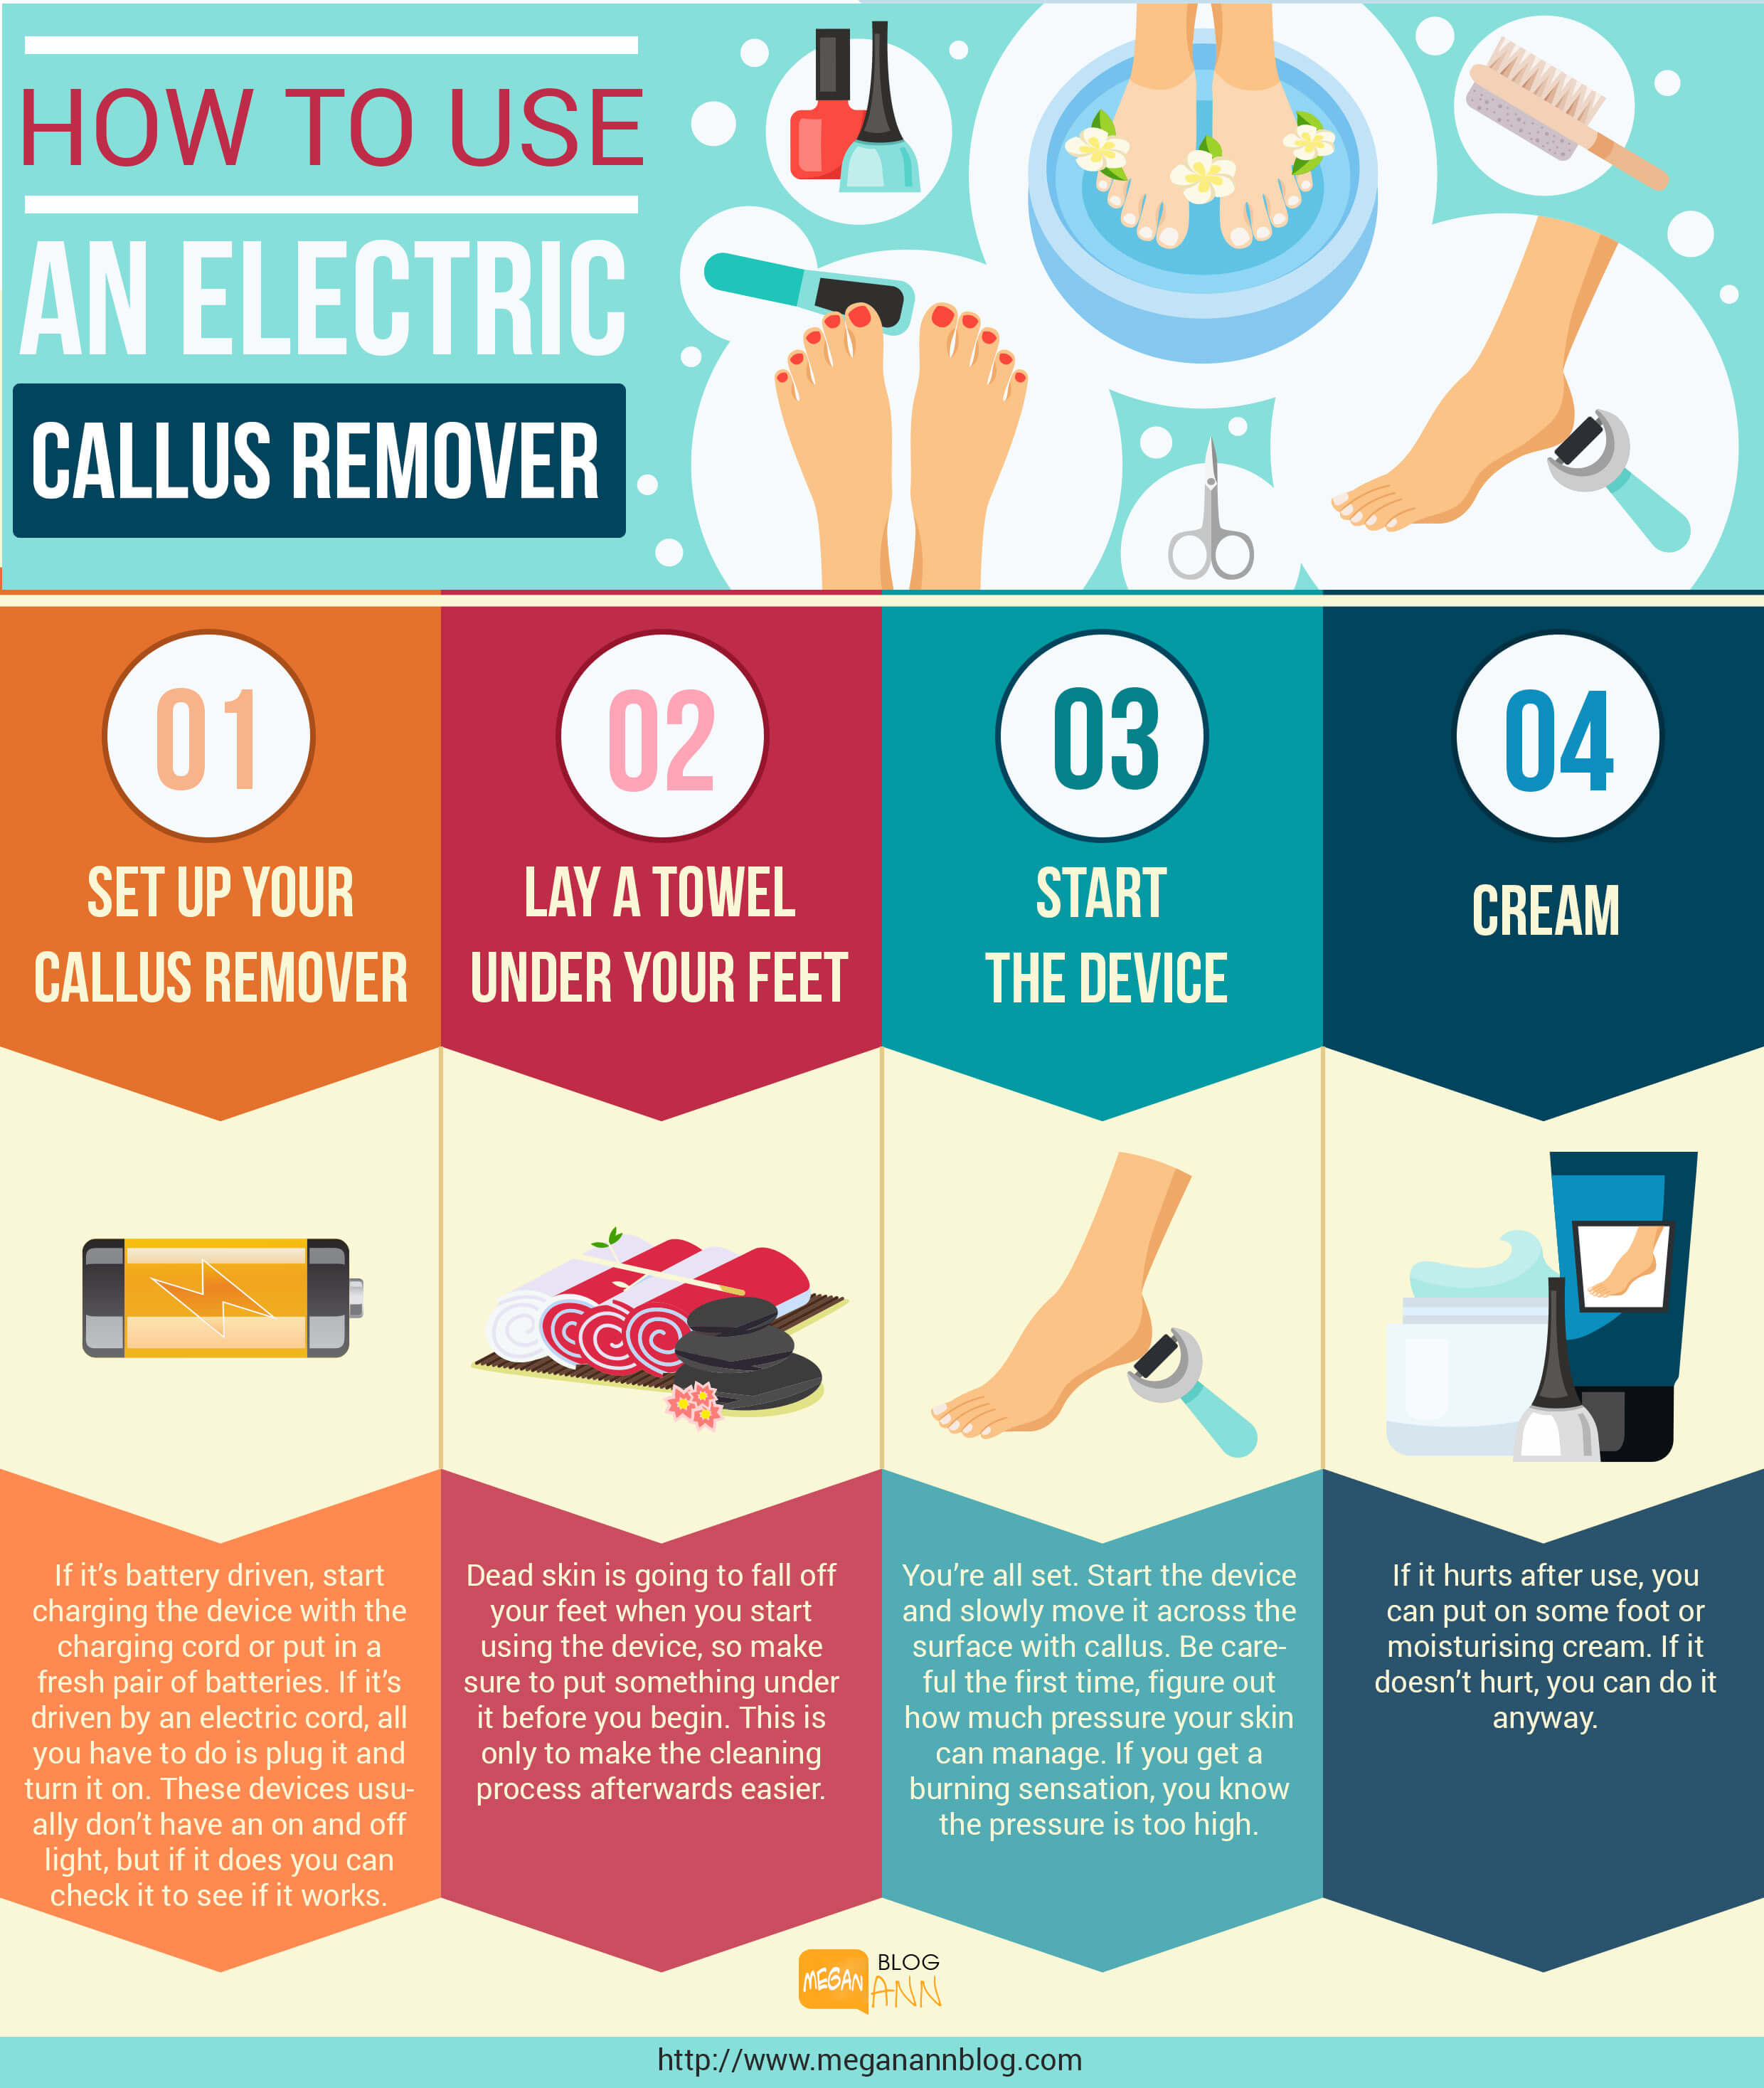 The step by step guide on how to use an Electric callus remover